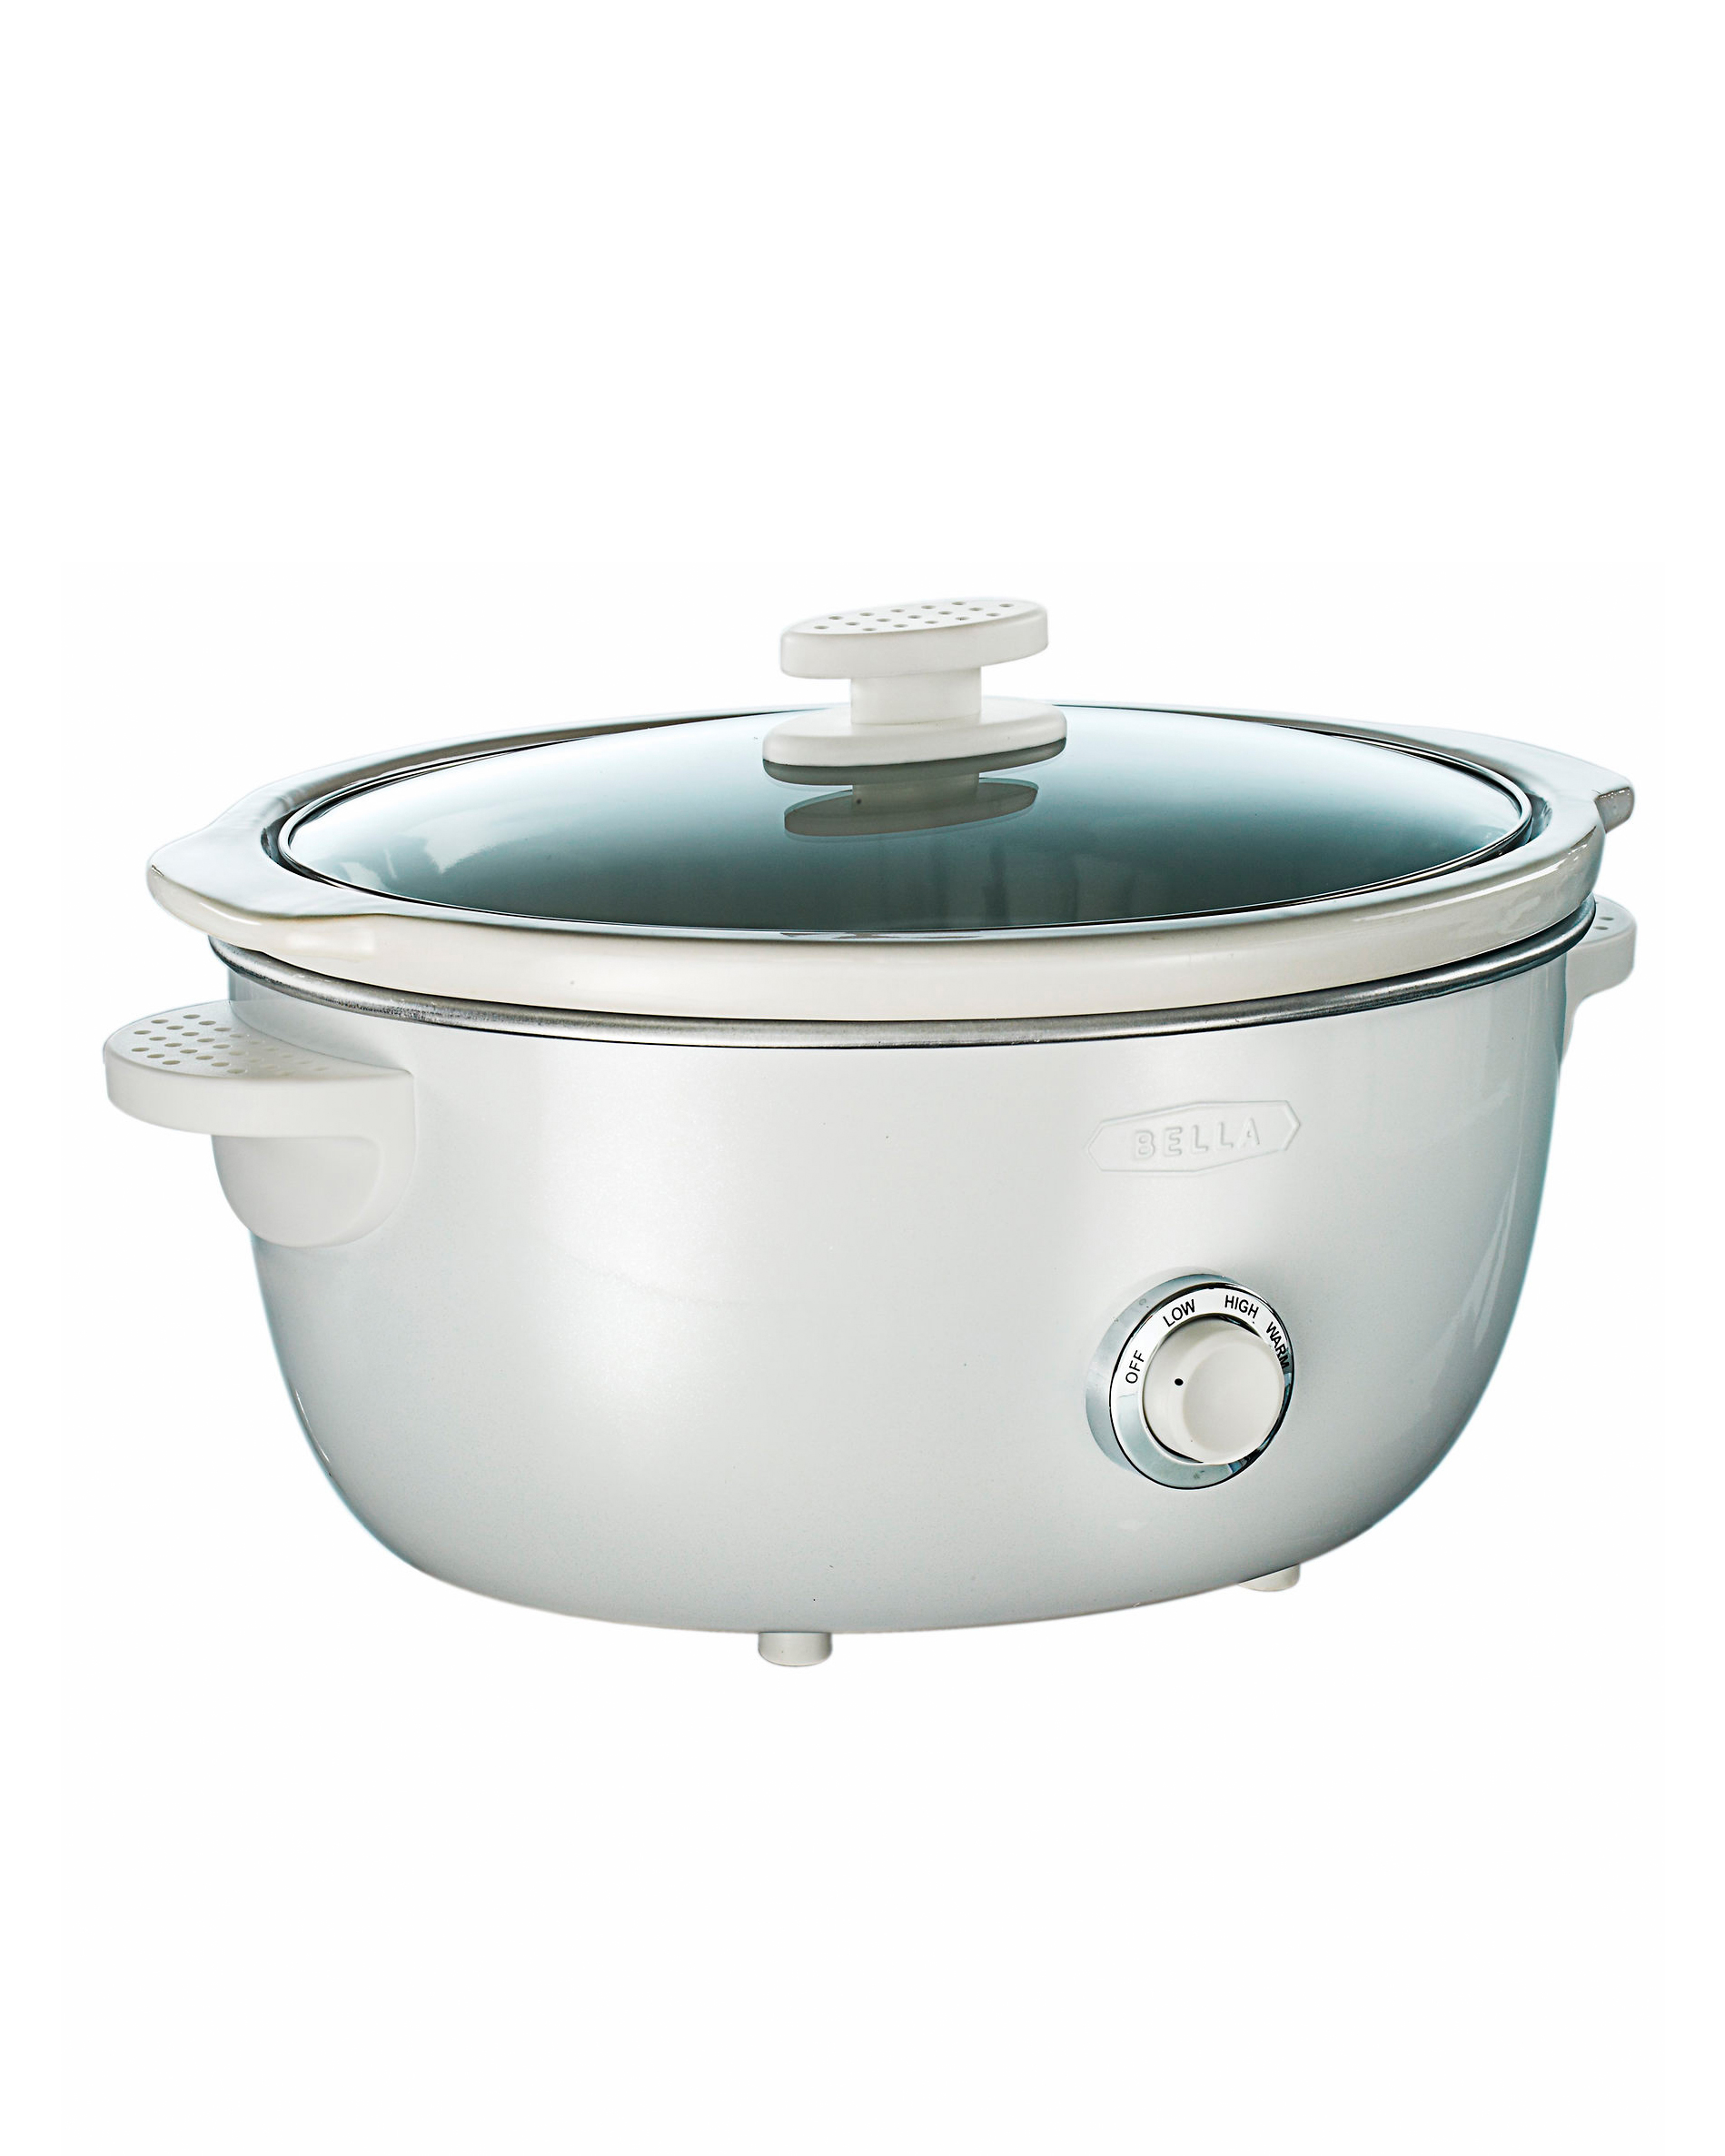 editors-registry-picks-3-slow-cooker-0715.jpg